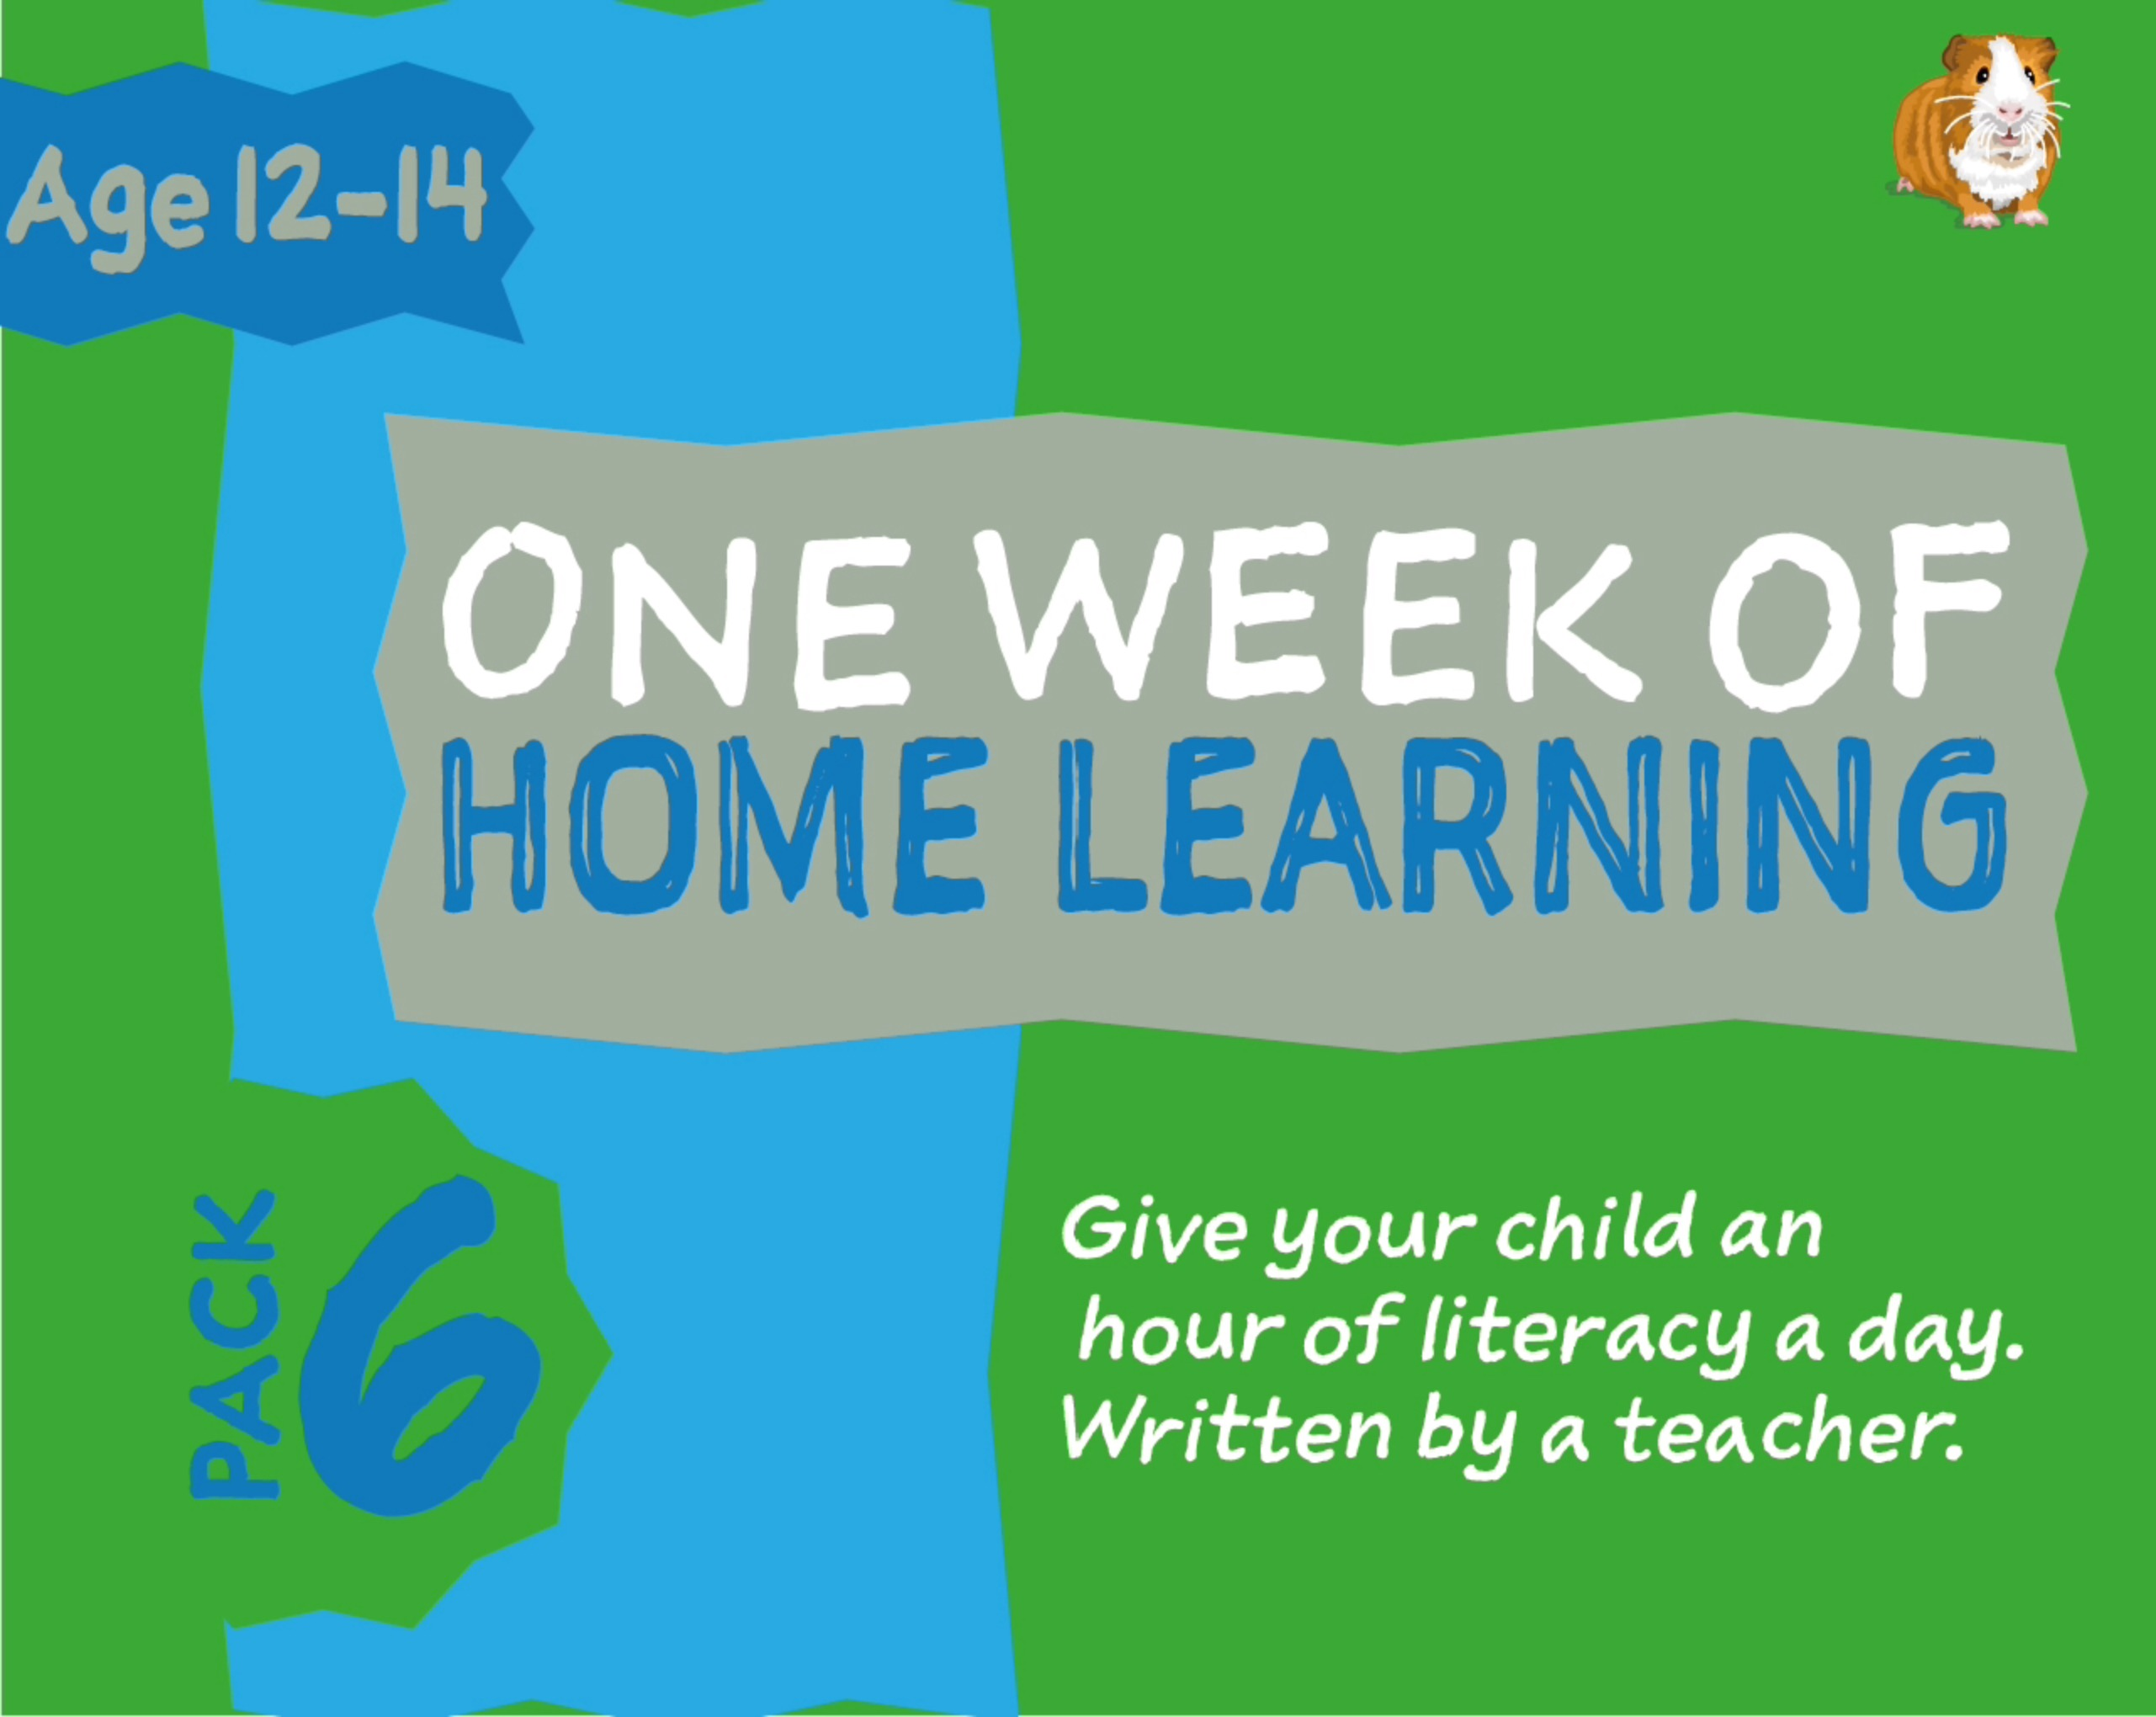 1 WEEK Literacy Distance Learning: Pack SIX (age 12-14 years) Grades 6-8